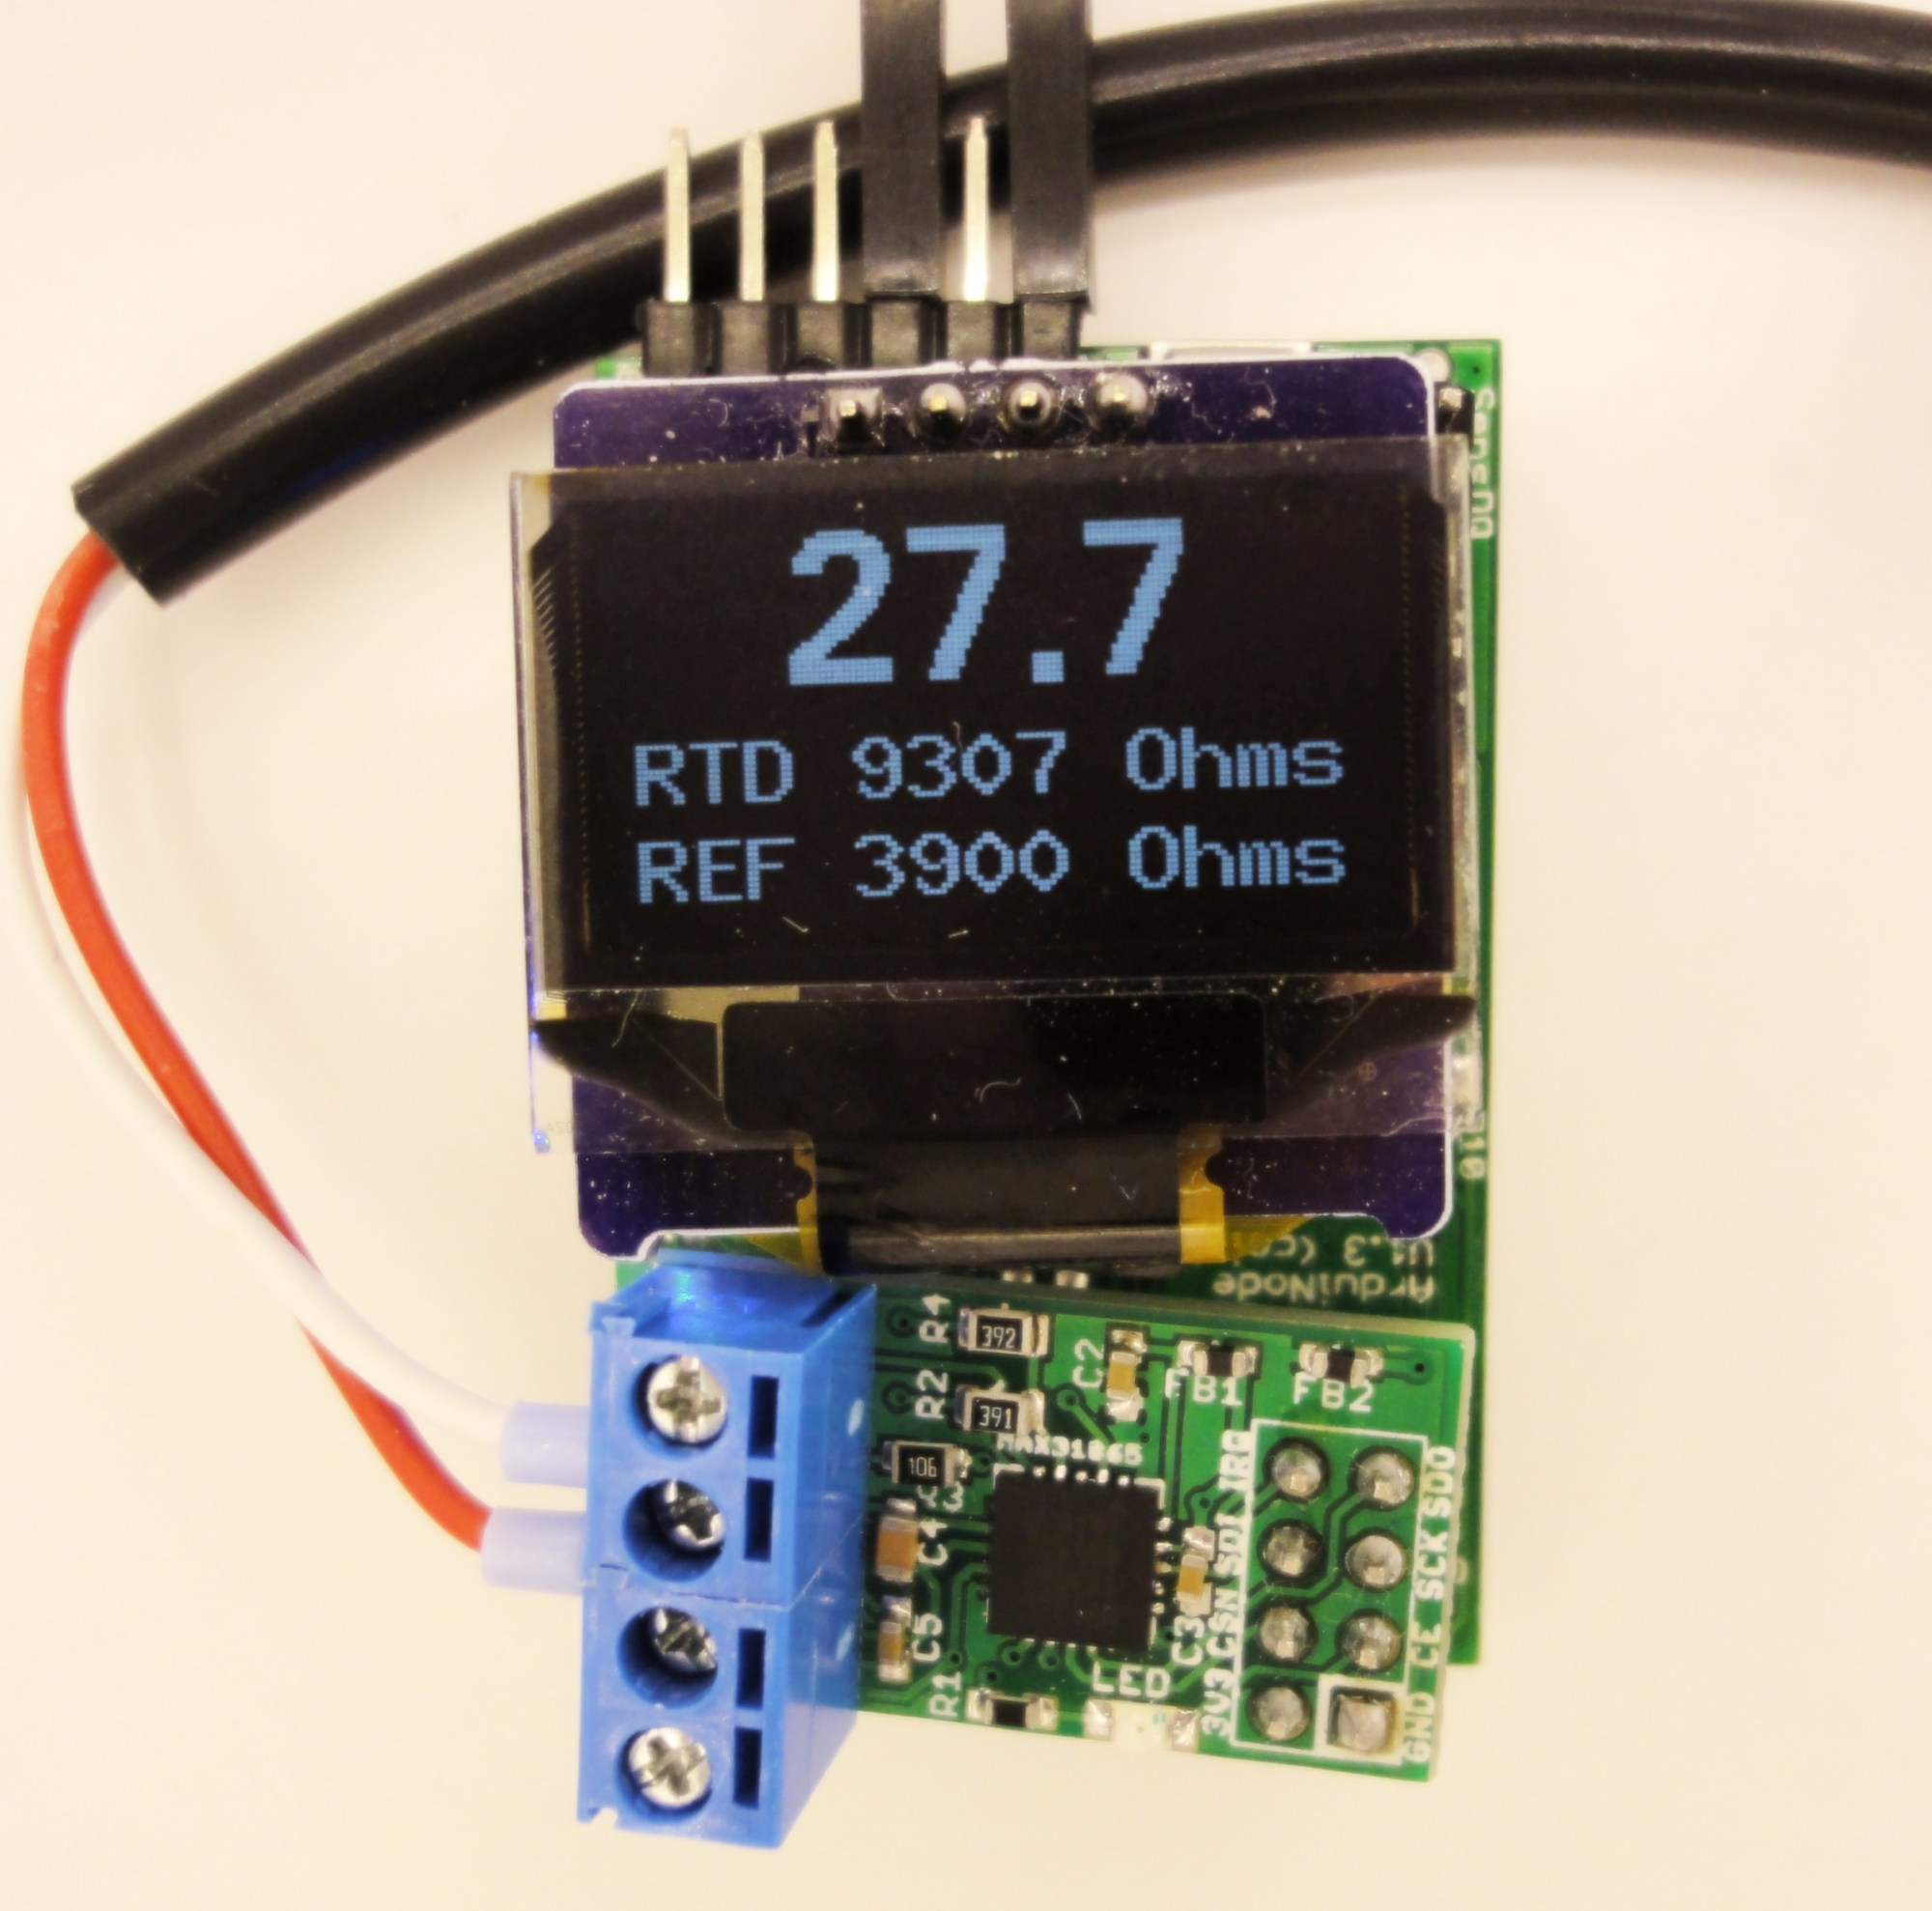 hight resolution of oled with working breakout board